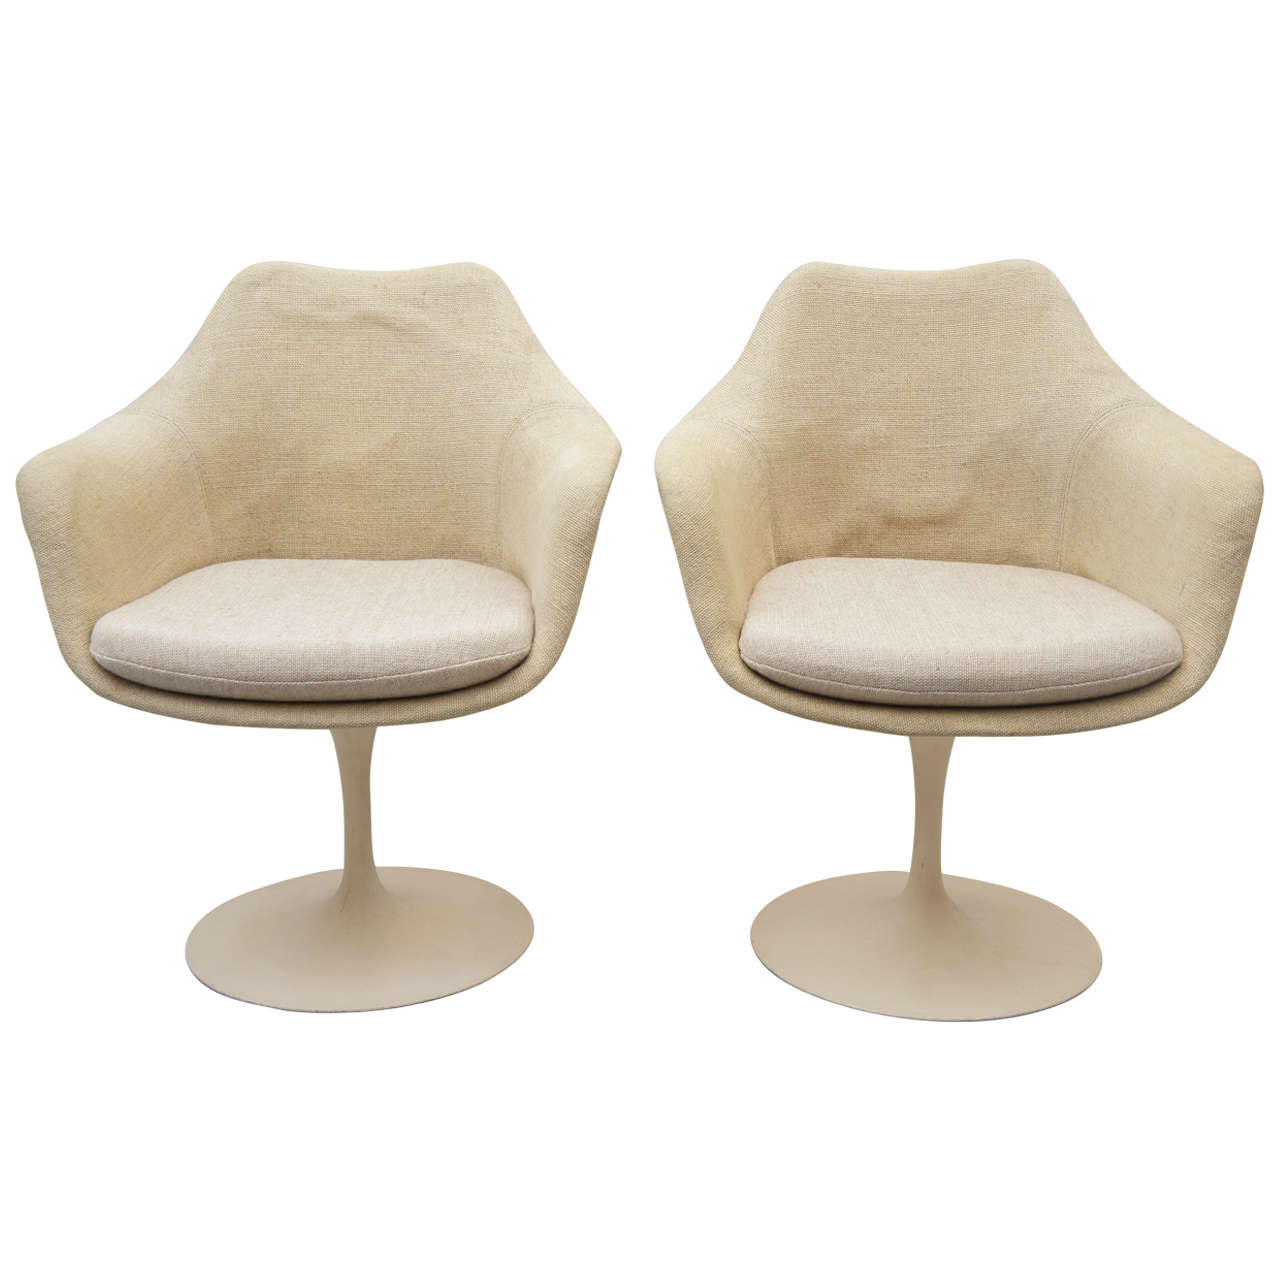 Pair of eero saarinen tulip chairs for knoll at 1stdibs for Eero saarinen tulip armchair